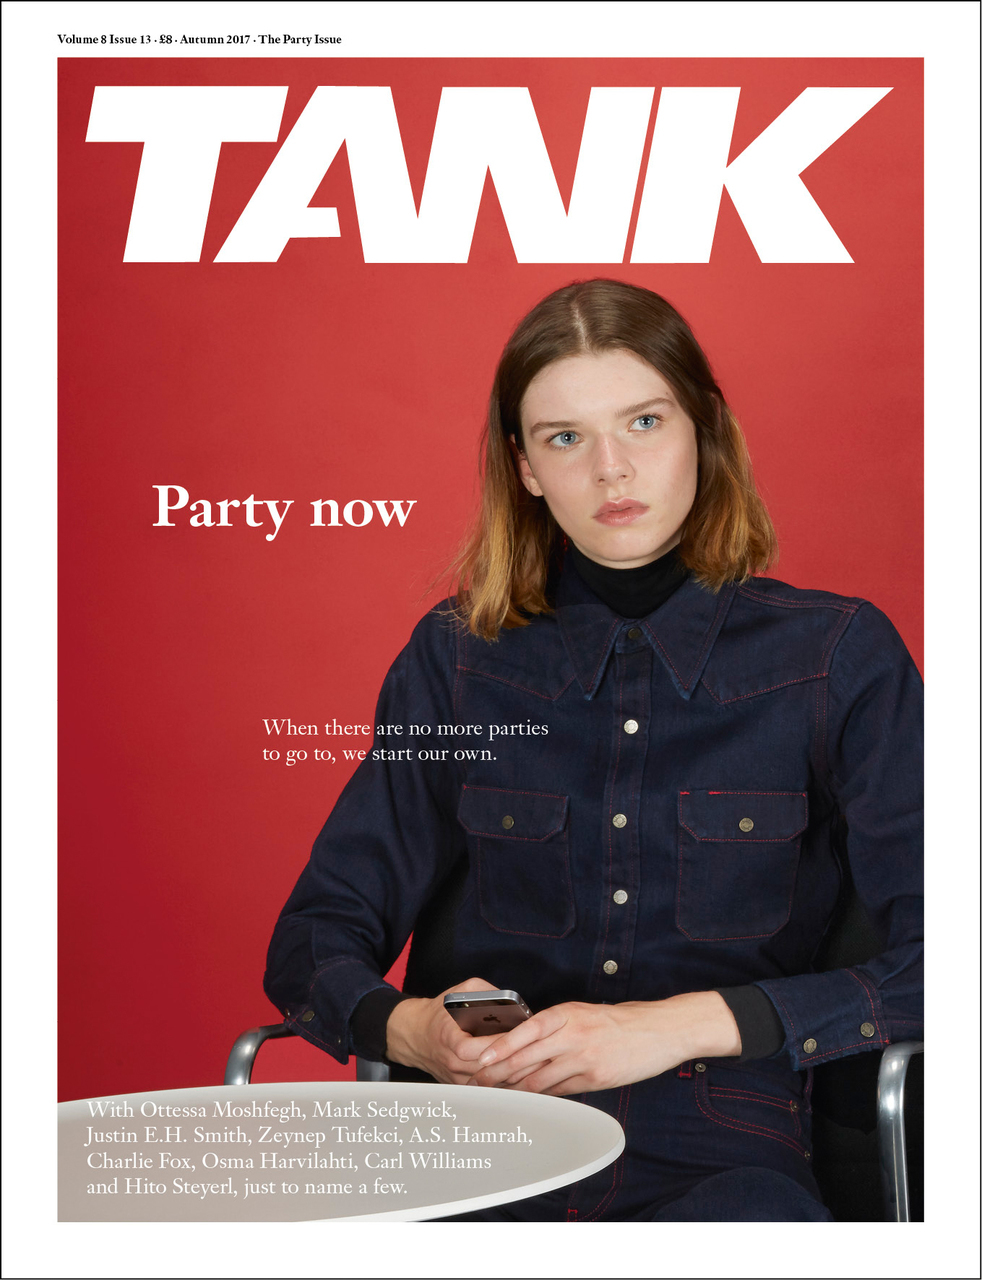 Tank_Autumn_2017_The_Party_Issue_Cover_with_black_frame__41208.1551978126.1280.1280.jpg